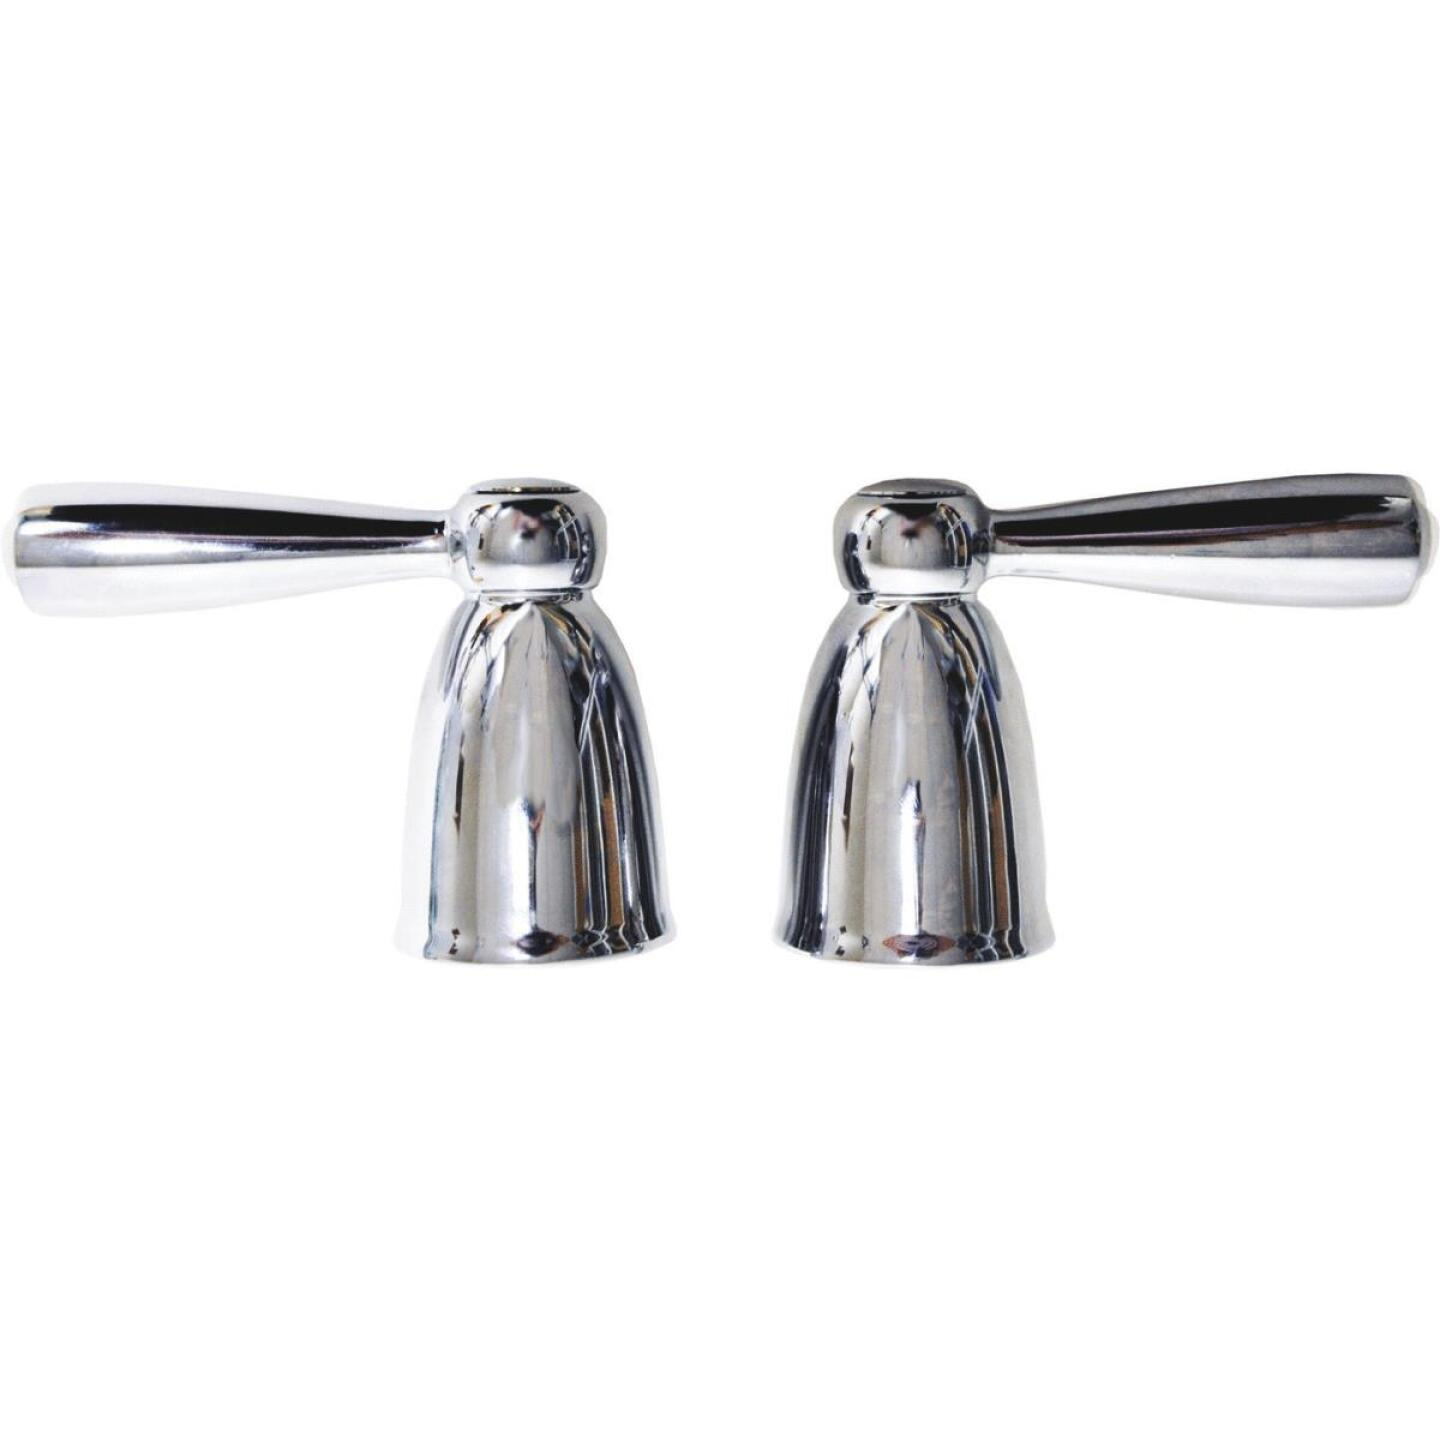 Danco Replacement Faucet Handle Image 1